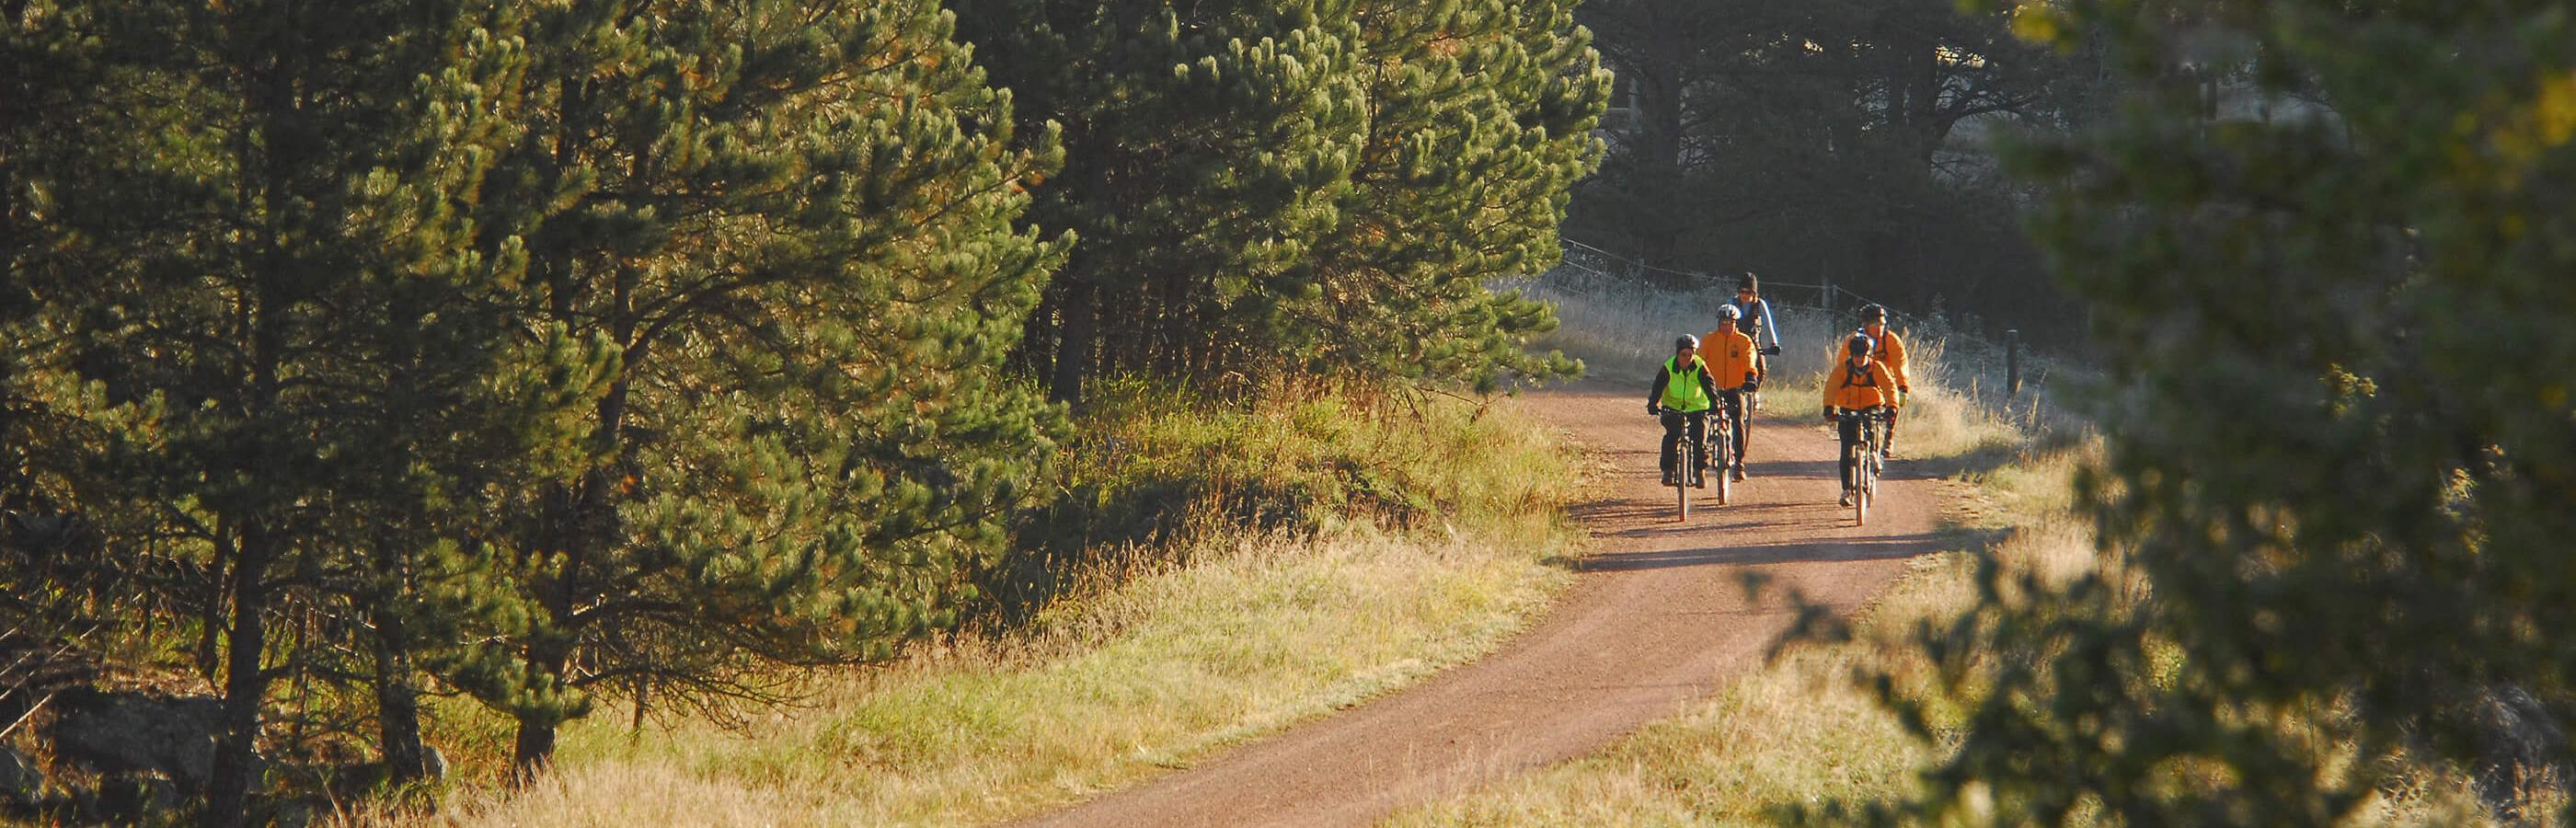 Biking on the Michelson Trail in South Dakota